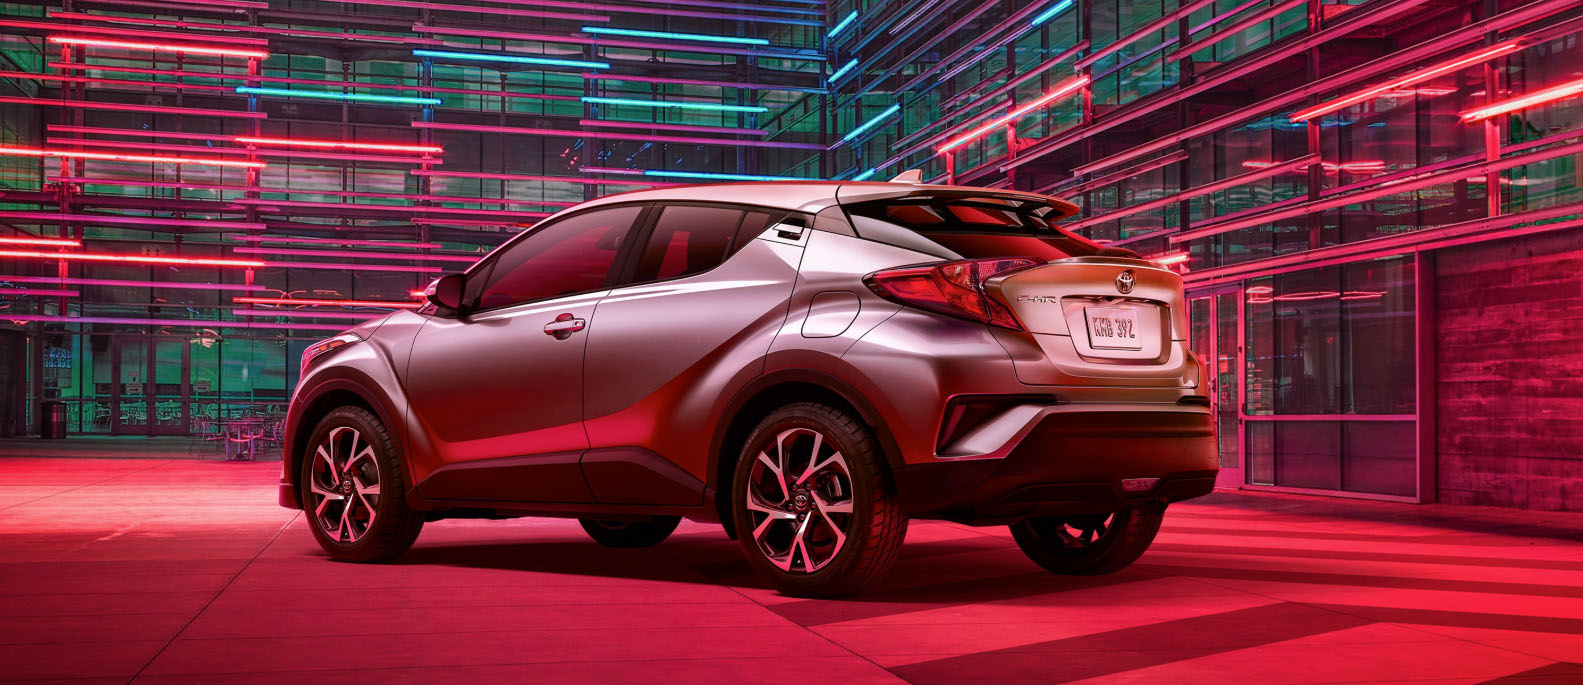 2020 Toyota C-HR Appearance Main Img